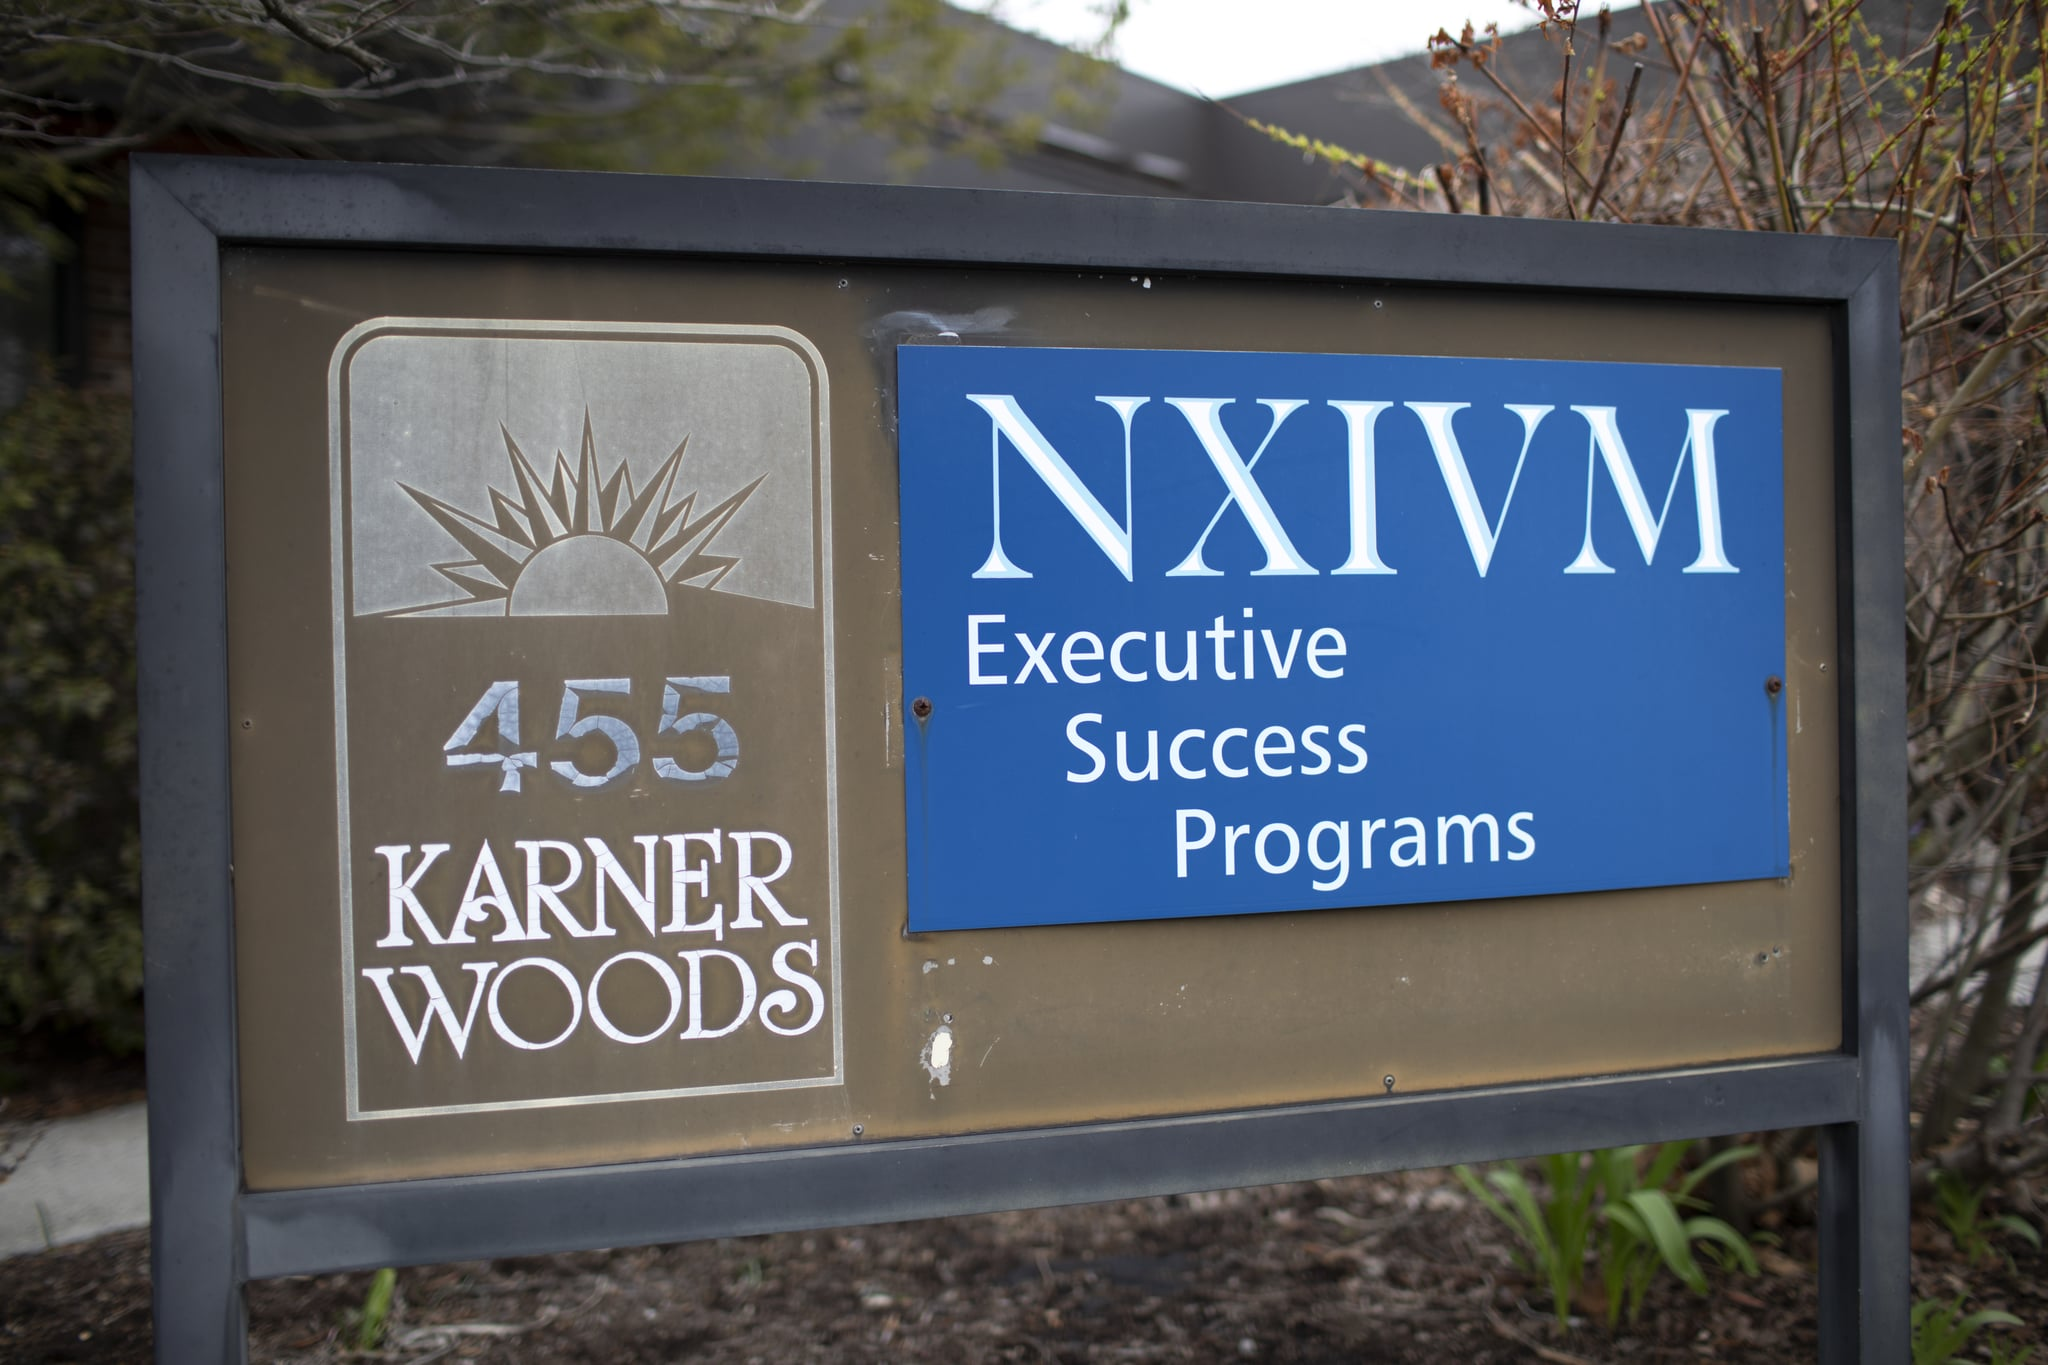 ALBANY, NY - APRIL 26: The NXIVM Executive Success Programs sign outside of the office at 455 New Karner Road on April 26, 2018 in Albany, New York. Keith Raniere, founder of NXIVM, was arrested by the FBI in Mexico in March of 2018. (Photo by Amy Luke/Getty Images)